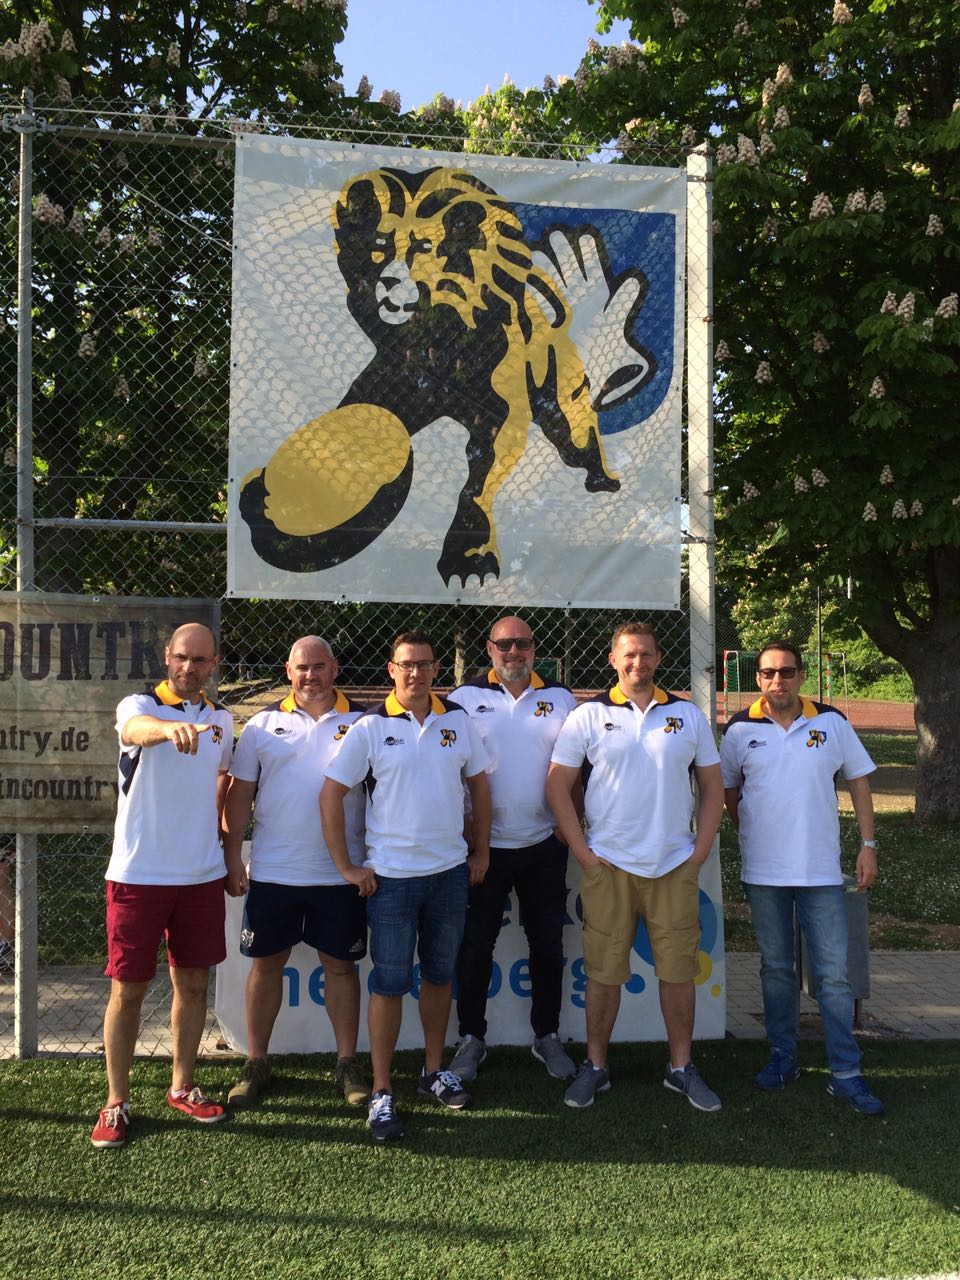 Lions for Lions